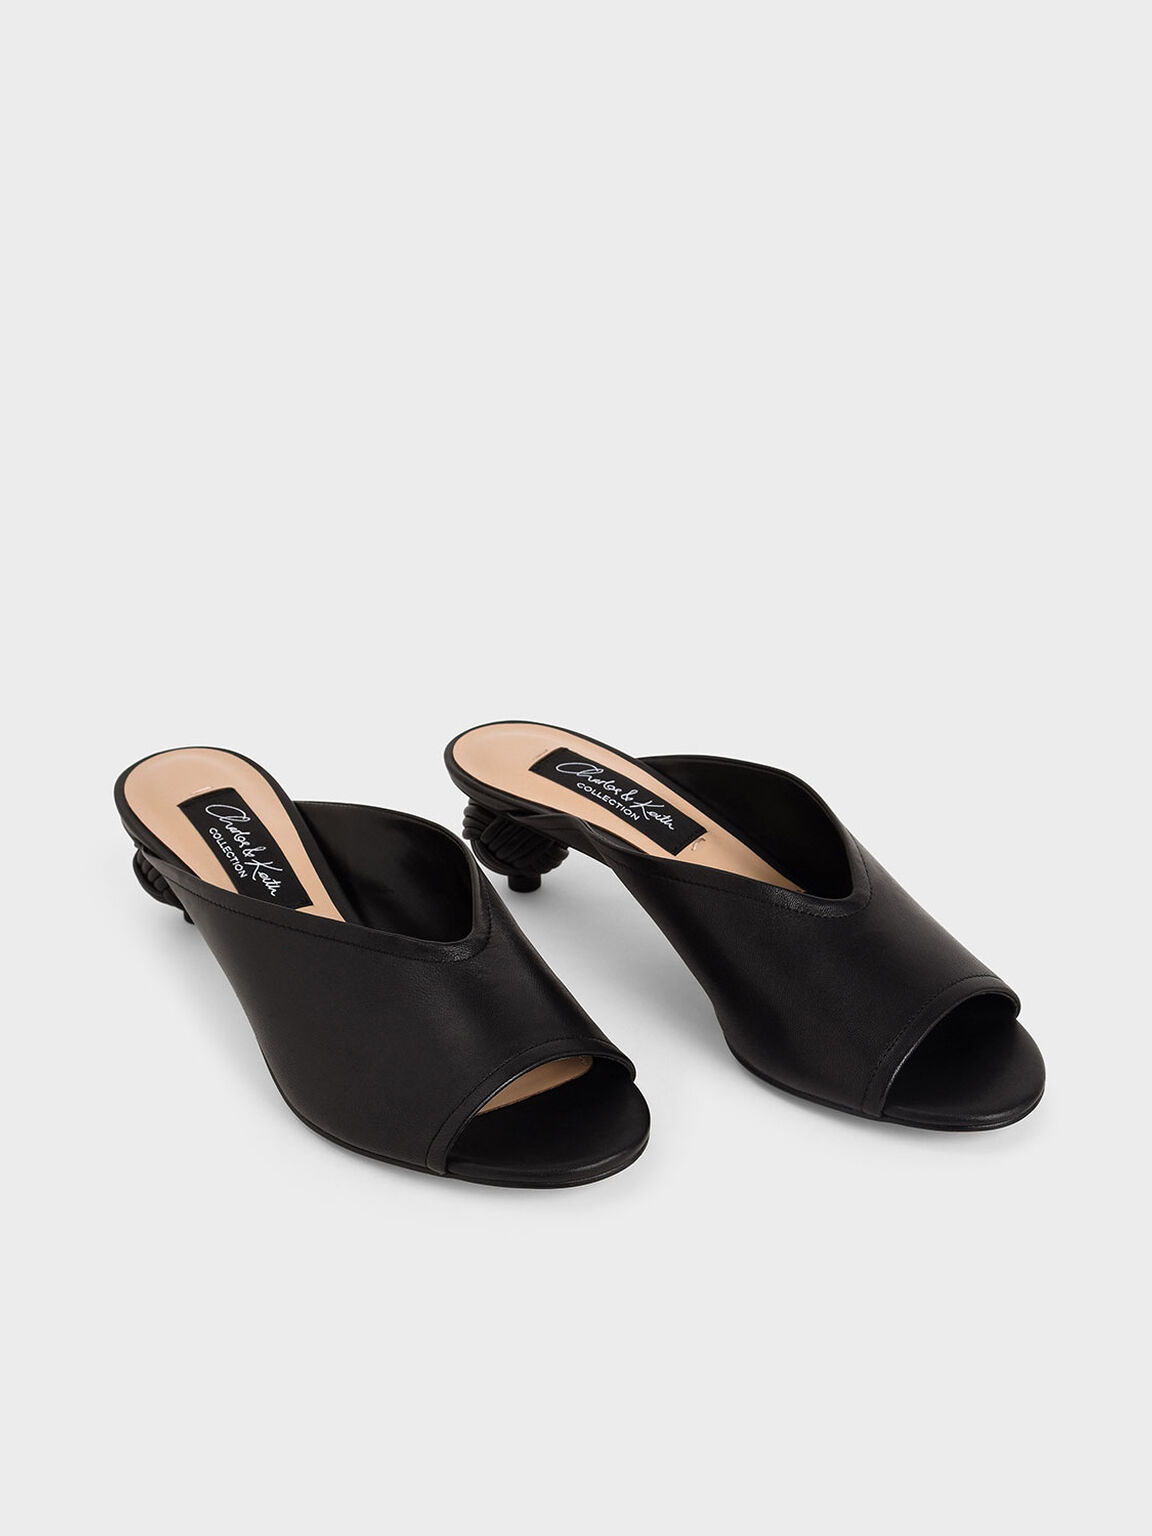 Leather Sculptural Heel Open Toe Mules, Black, hi-res